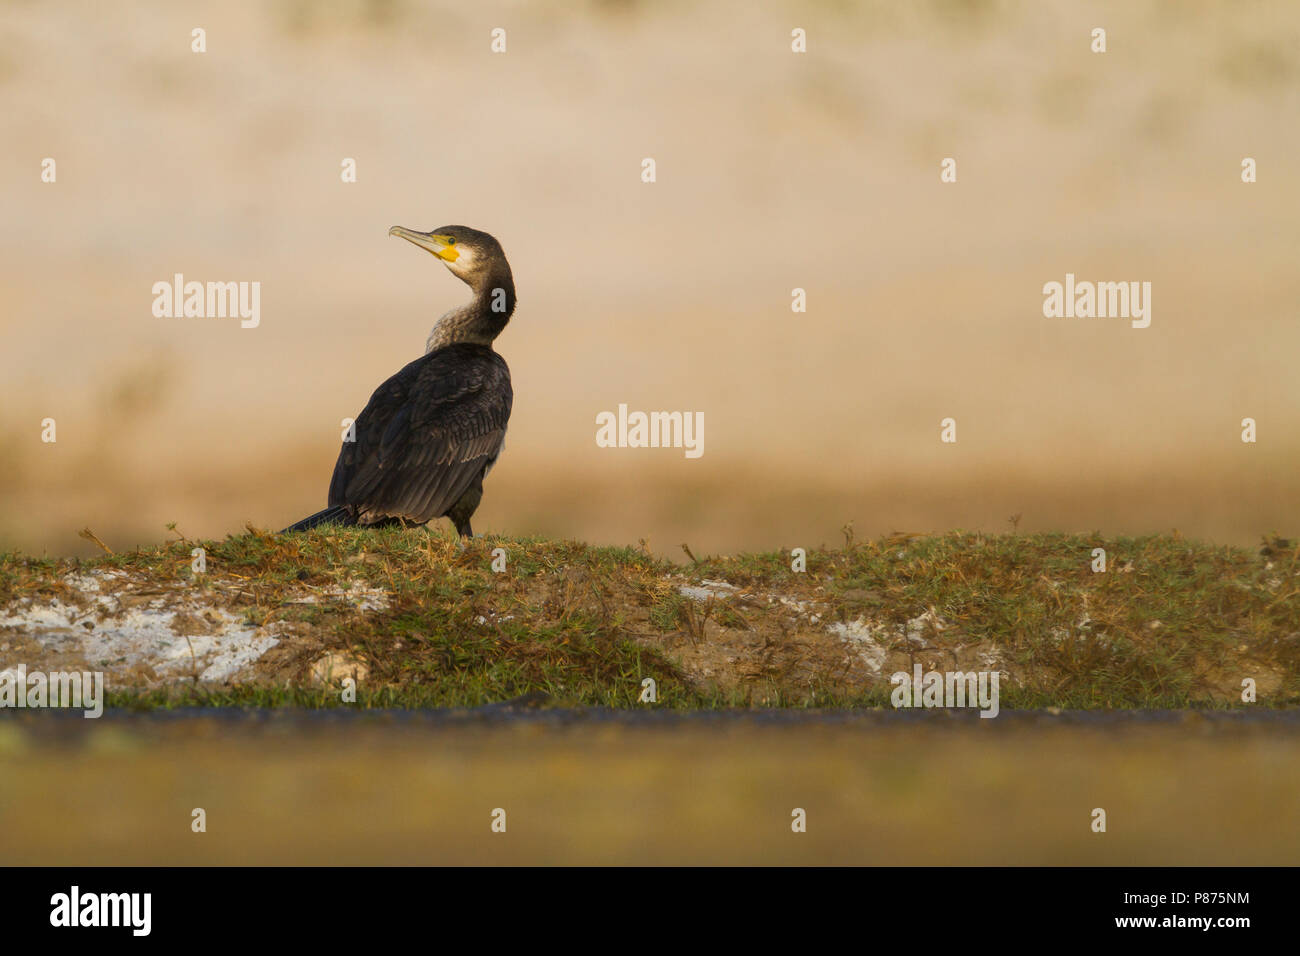 Great Cormorant - Kormoran - Phalacrocorax carbo ssp. sinensis, Oman. Looking over shoulder. - Stock Image